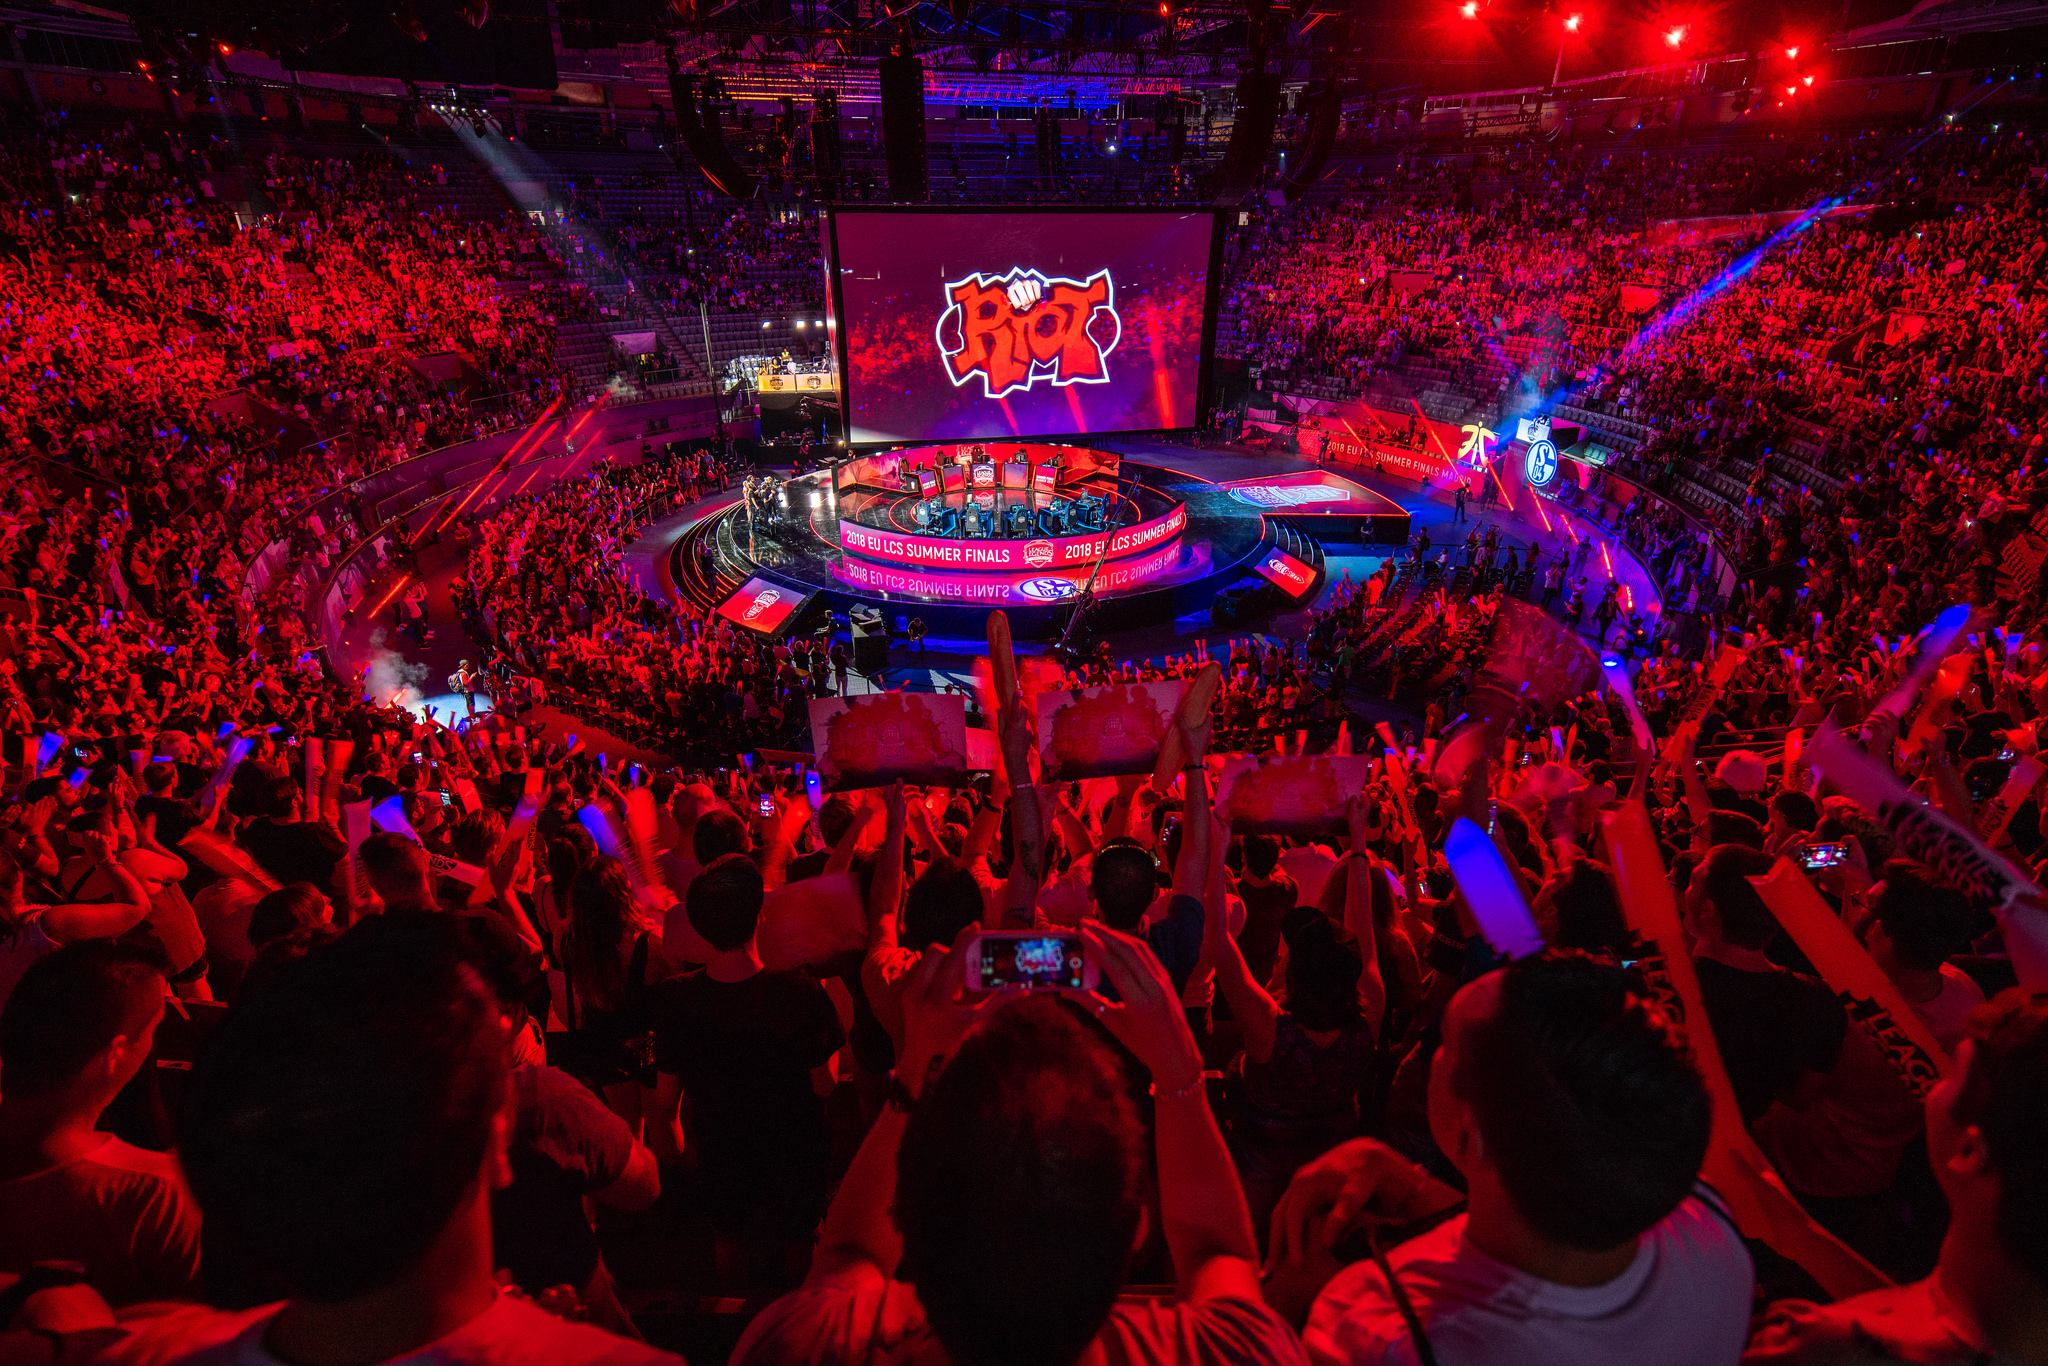 All 10 teams participating in the newly-franchised League of Legends